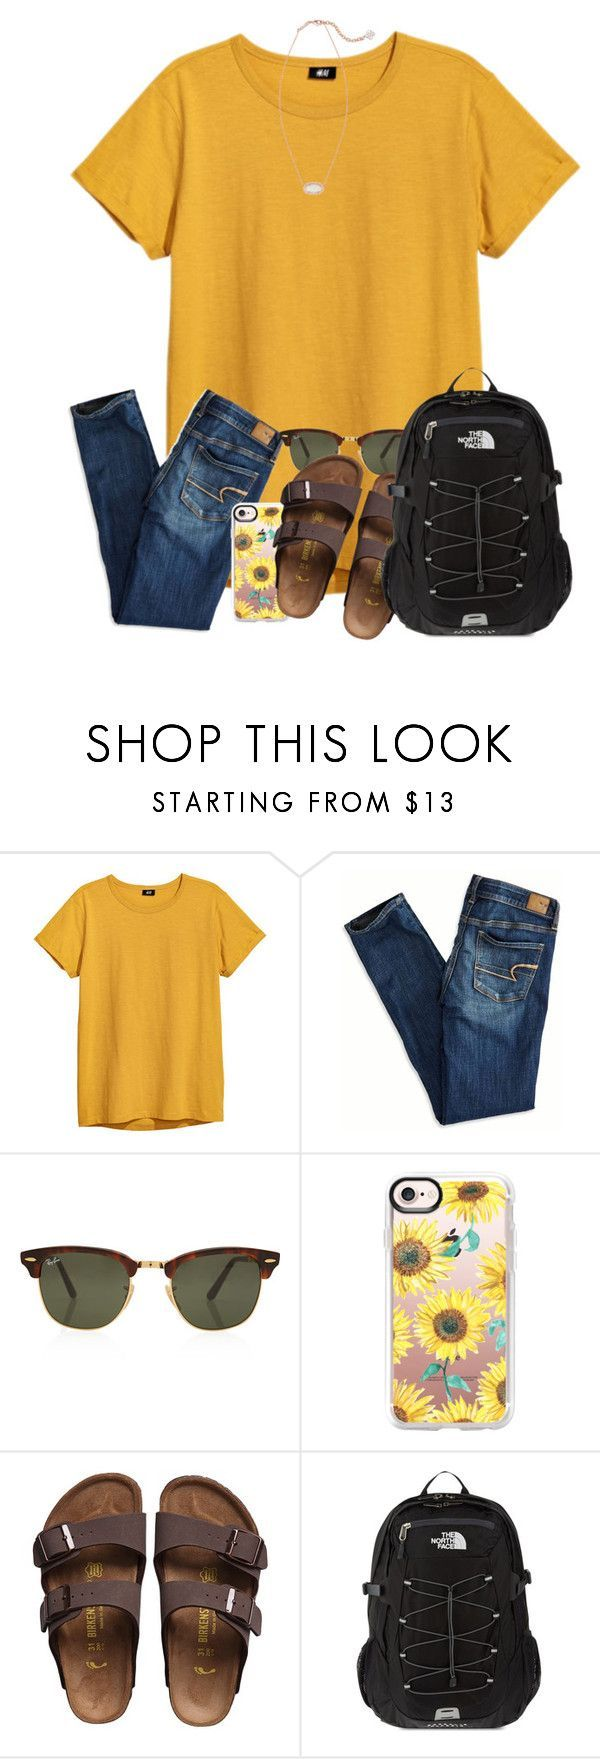 """RTD! SERIOUSLY!"" by ellisonharris ❤ liked on Polyvore featuring American Eagle Outfitters, Rayban, Casetify, Birkenstock, The North Face and Kendra Scott #americaneagleoutfitters"